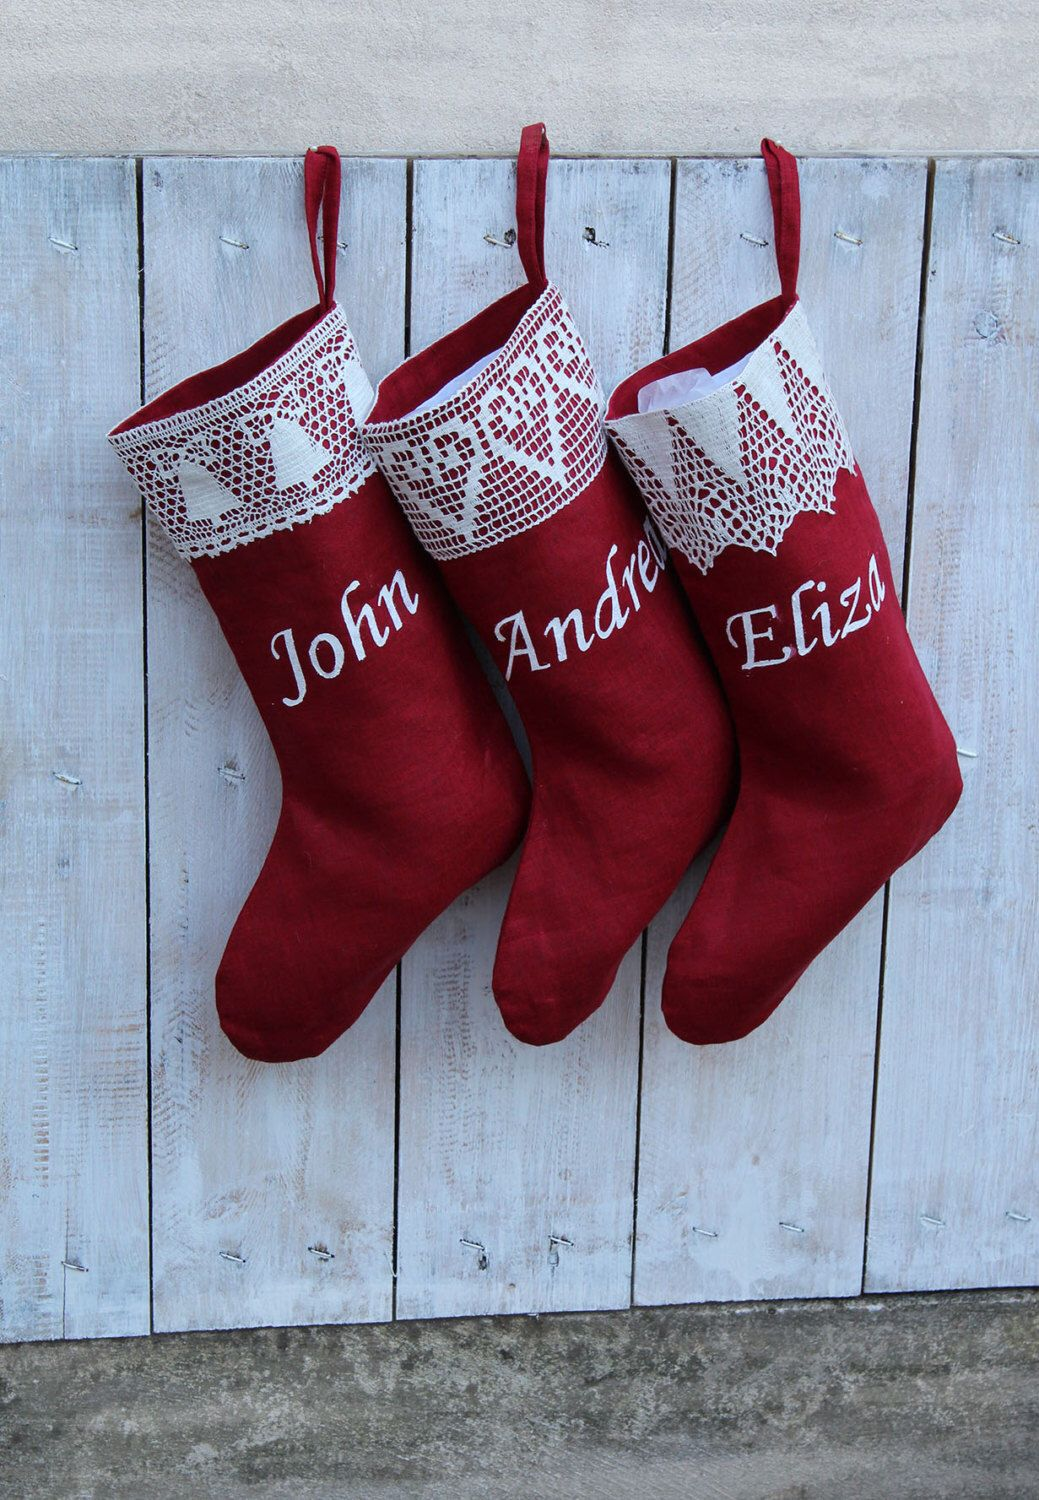 Personalized Red Christmas stockings with lace Custom christmas stocking  kits Xmas stockings Personalized Christmas stockings personalized